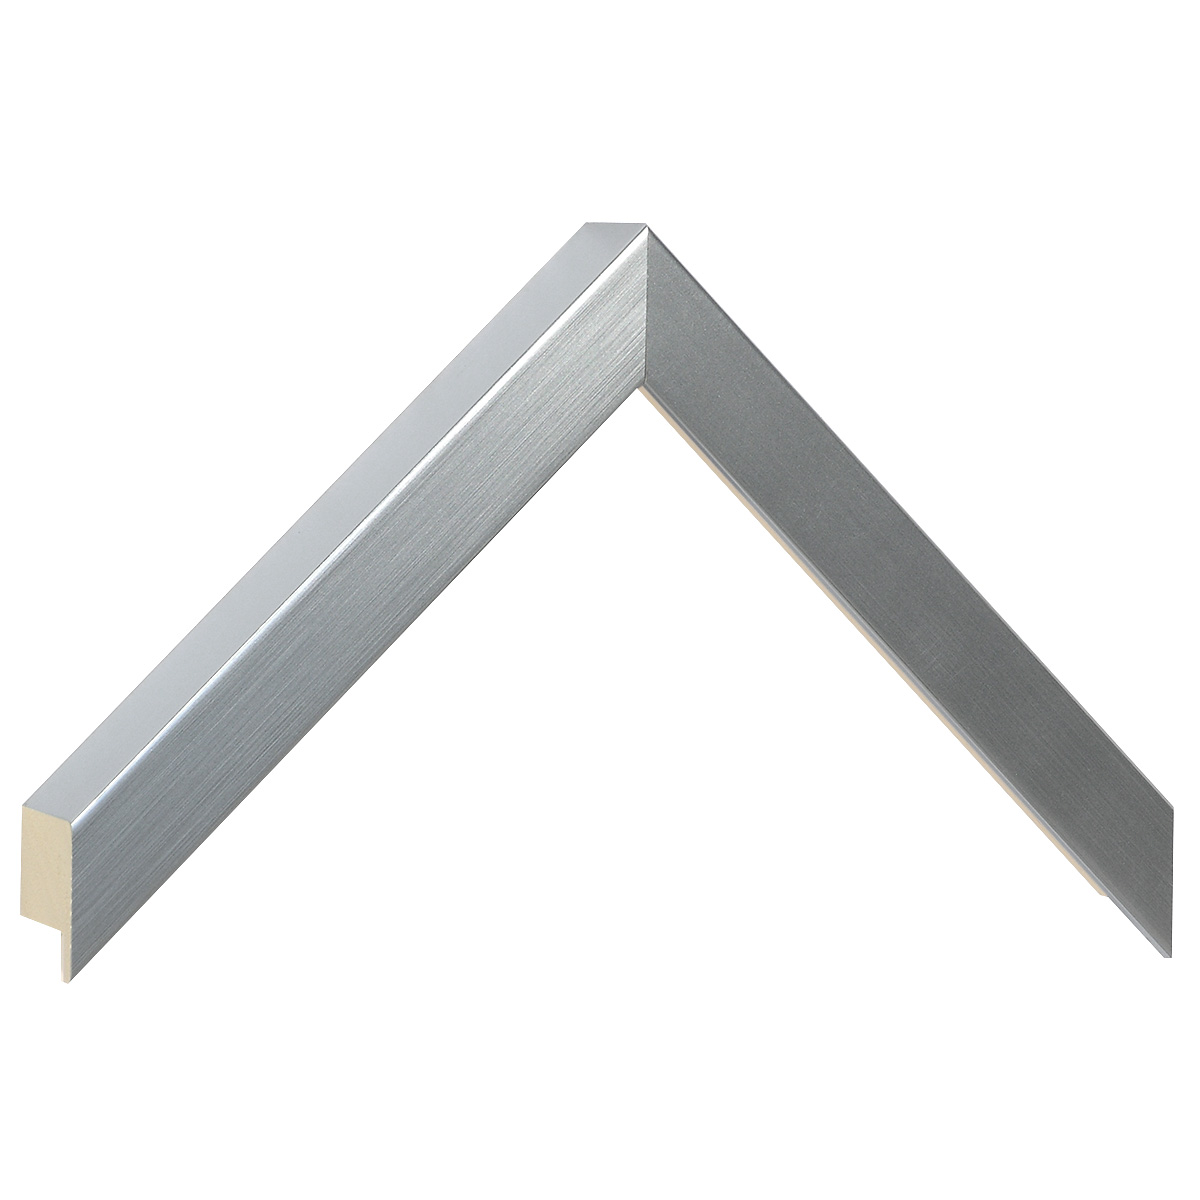 Moulding ayous, width 20mm height 32 - silver